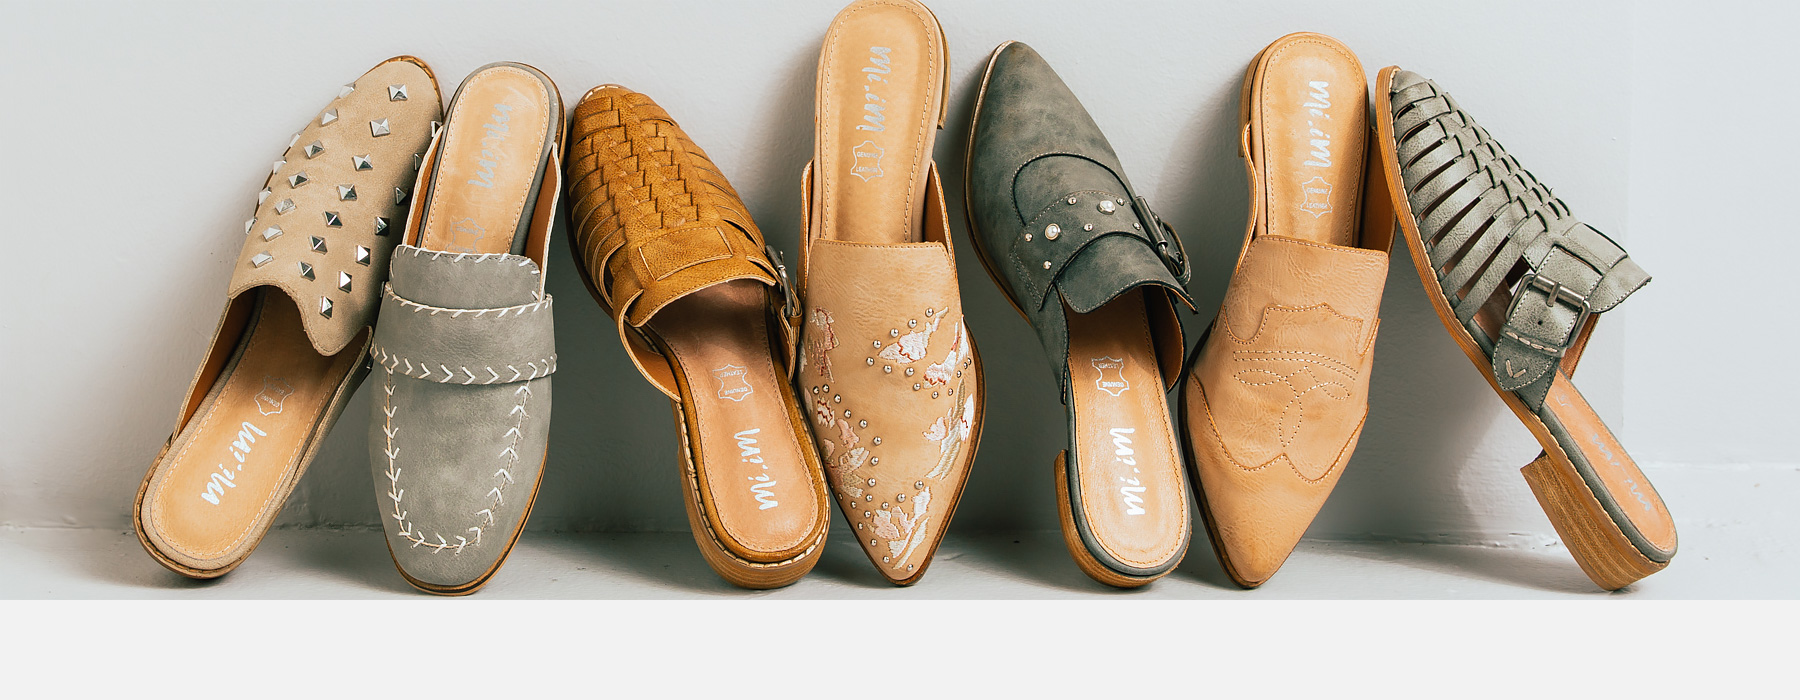 Seven different types of women's shoes